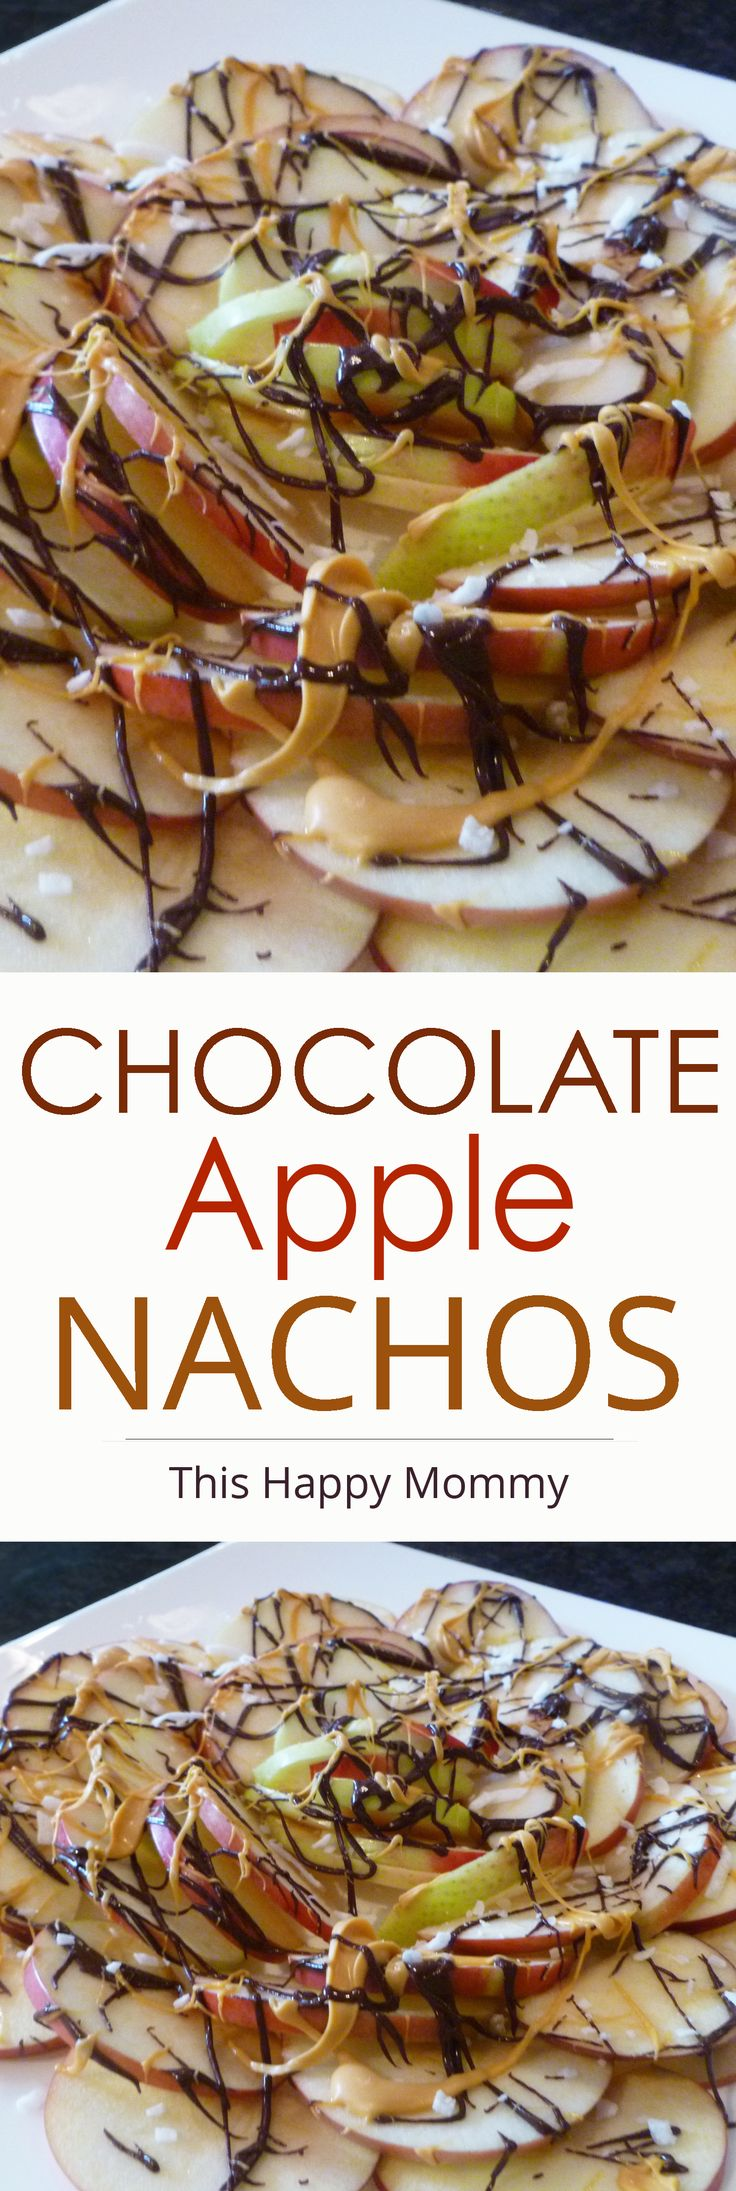 Chocolate Apple Nachos -- My kid love this! Apples covered with chocolate and butterscotch. Yum! | thishappymommy.com